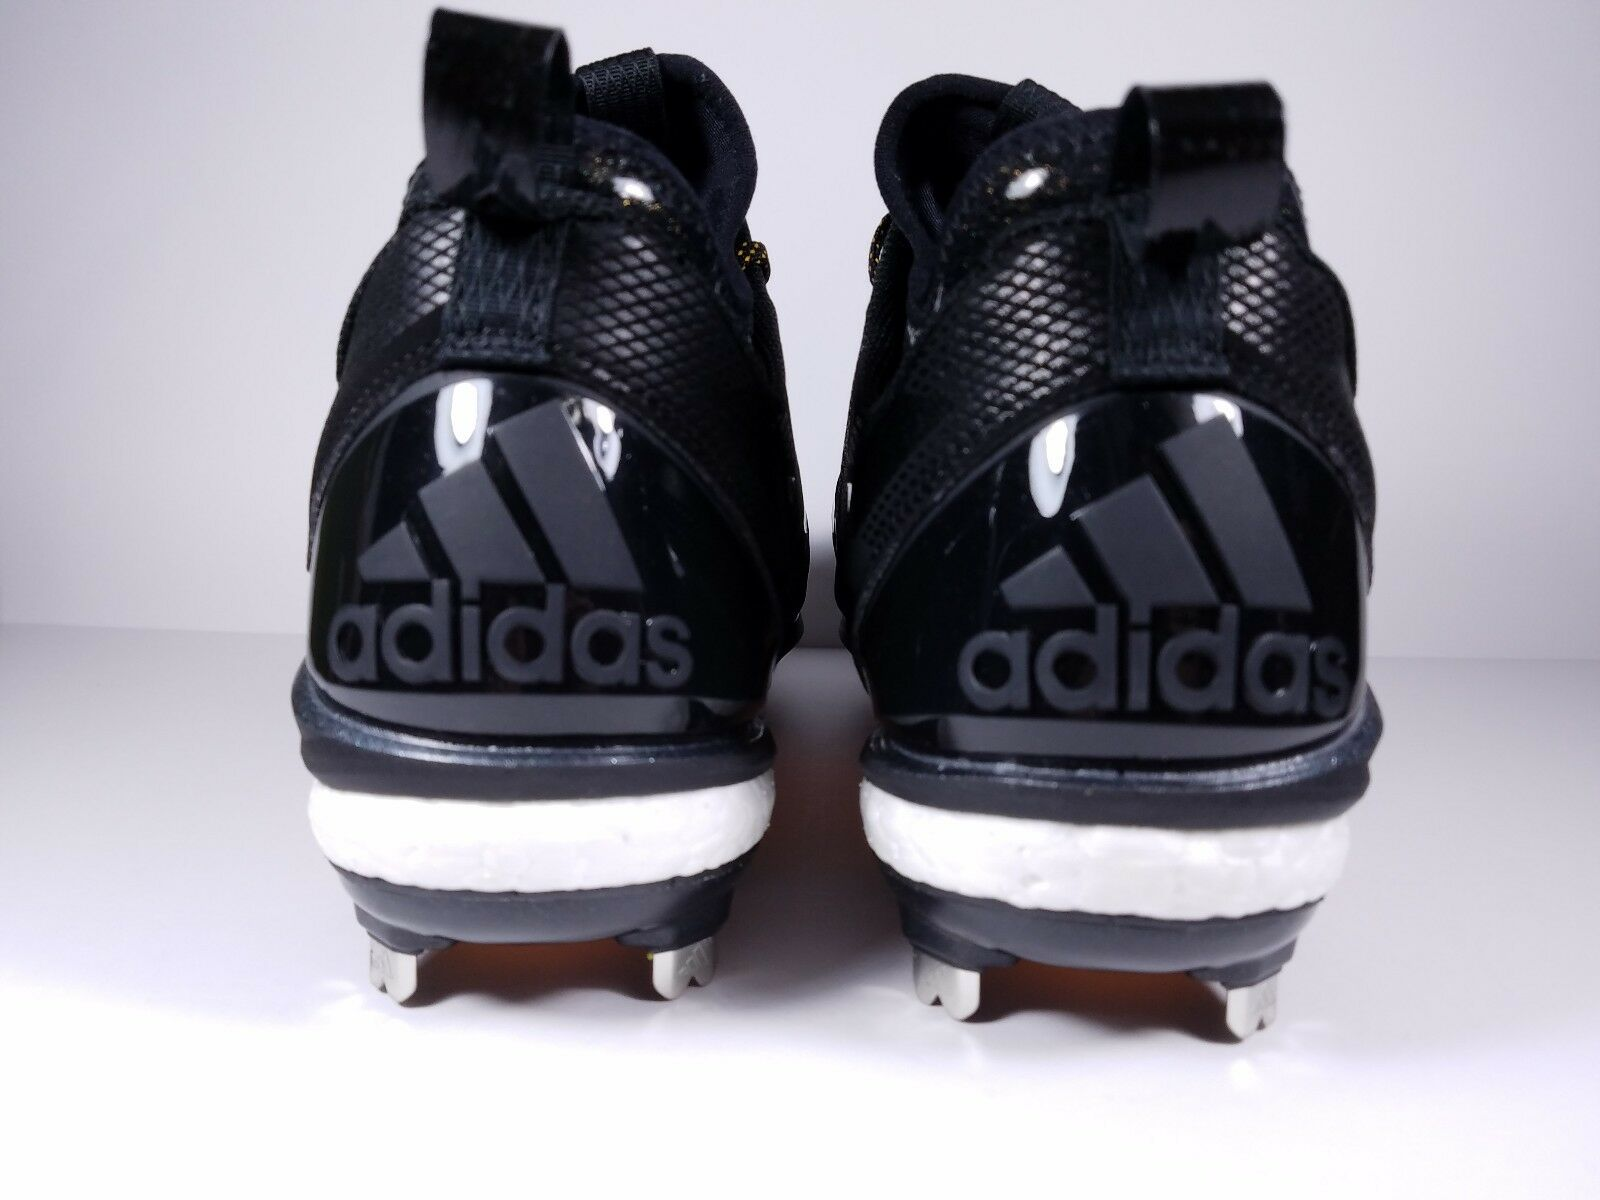 Adidas Size 13 13 13 Cleats Energy Boost Icon 2.0 Metal Baseball Q16523 Black gold 0b6d12